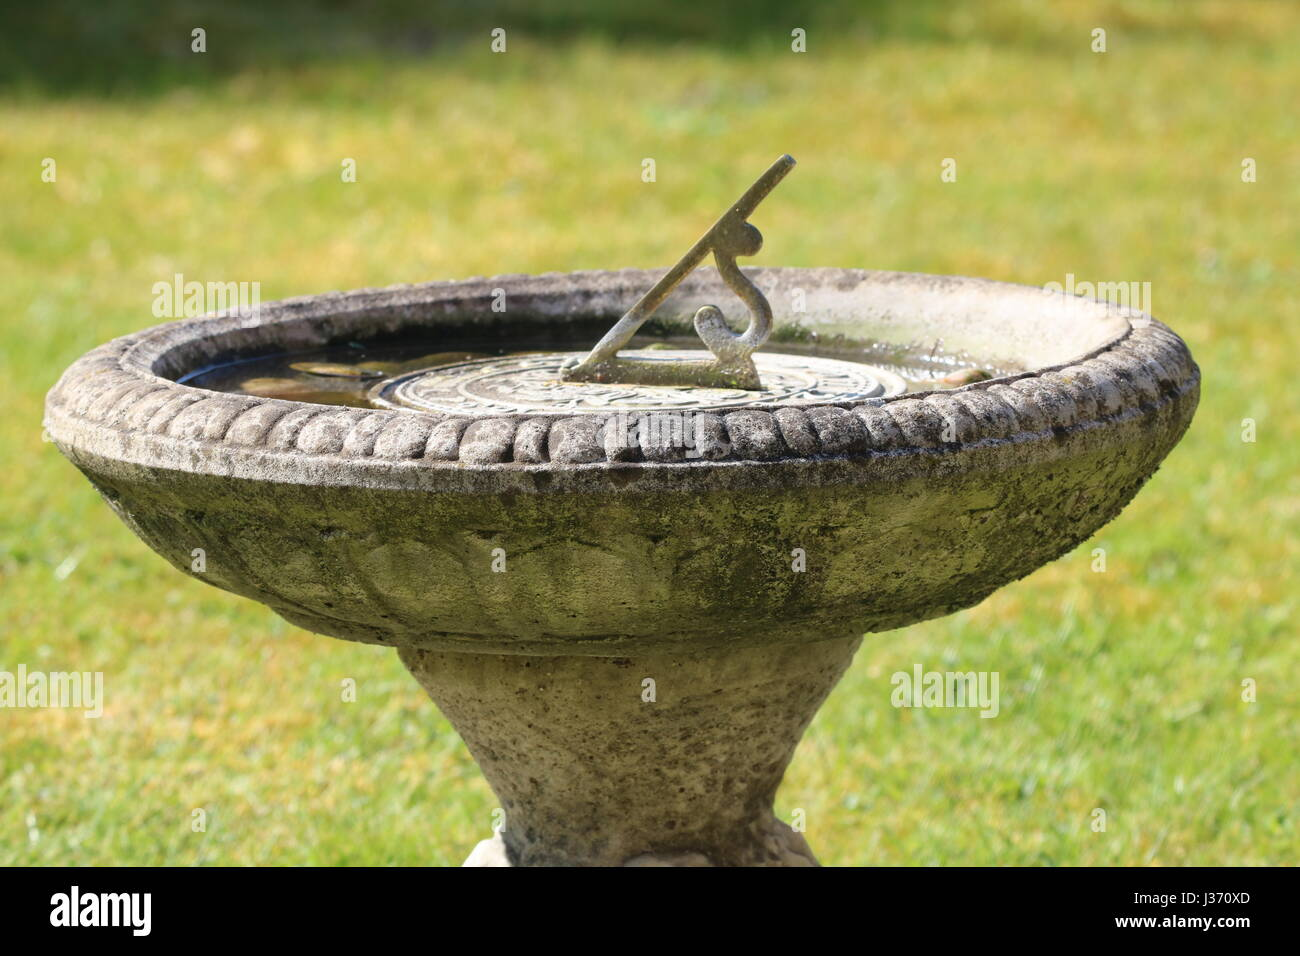 Sundial garden ornament - Stone Feature Garden Sundial Stock Image